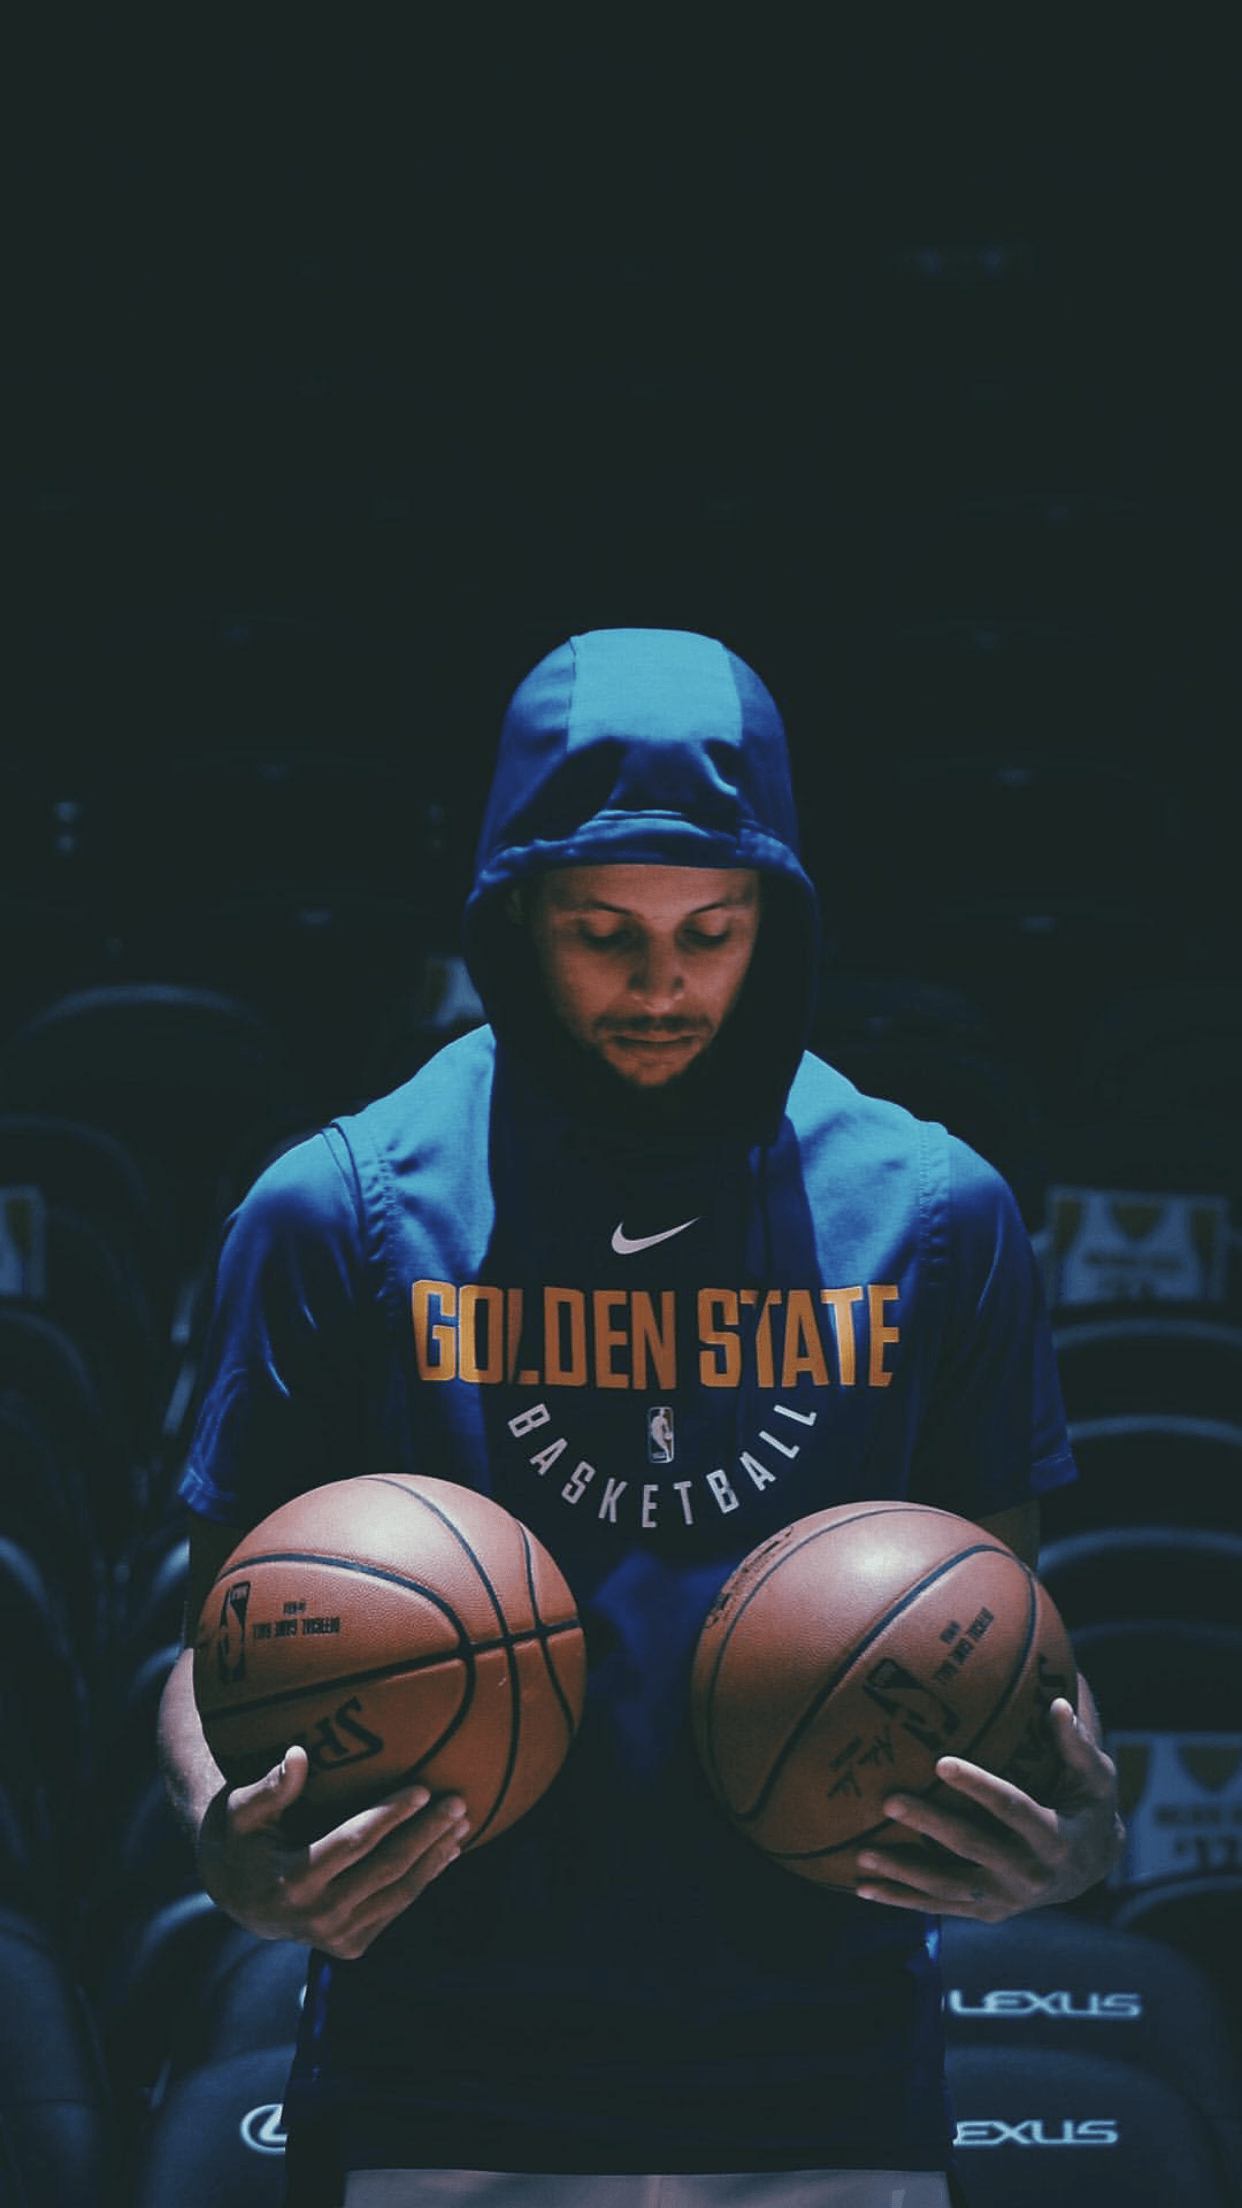 Stephen Curry Phone Wallpapers Top Free Stephen Curry Phone Backgrounds Wallpaperaccess Curry Nba Stephen Curry Basketball Nba Stephen Curry